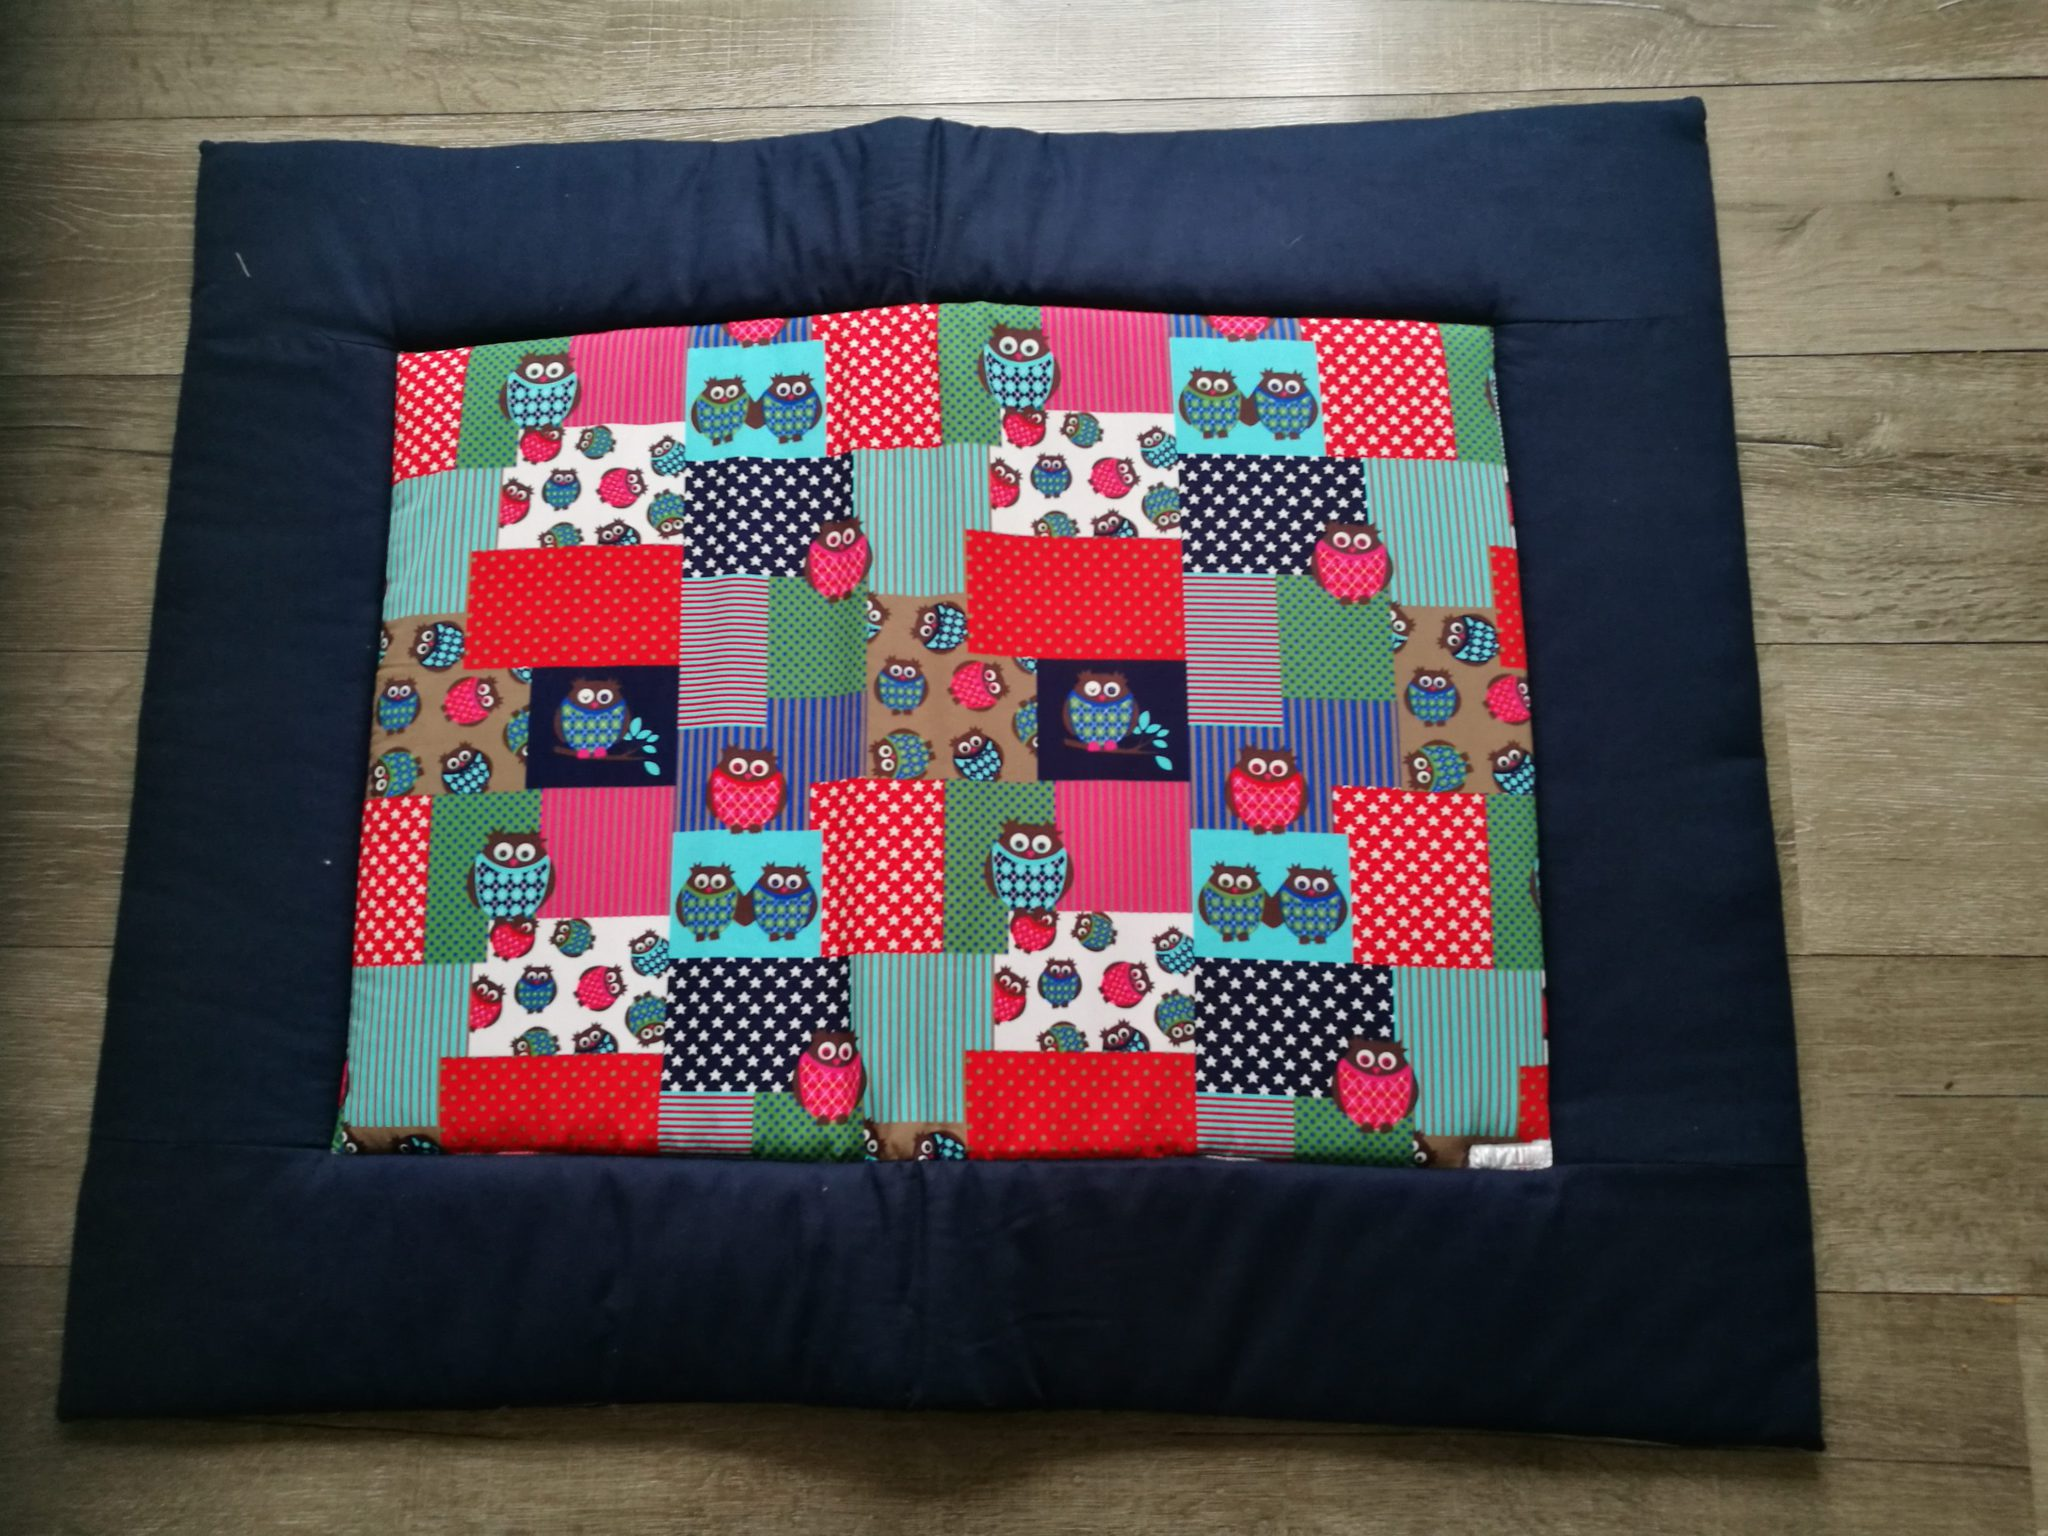 7bc0ba73617 Boxkleed Uil blauw - rood quilt / rand donkerblauw